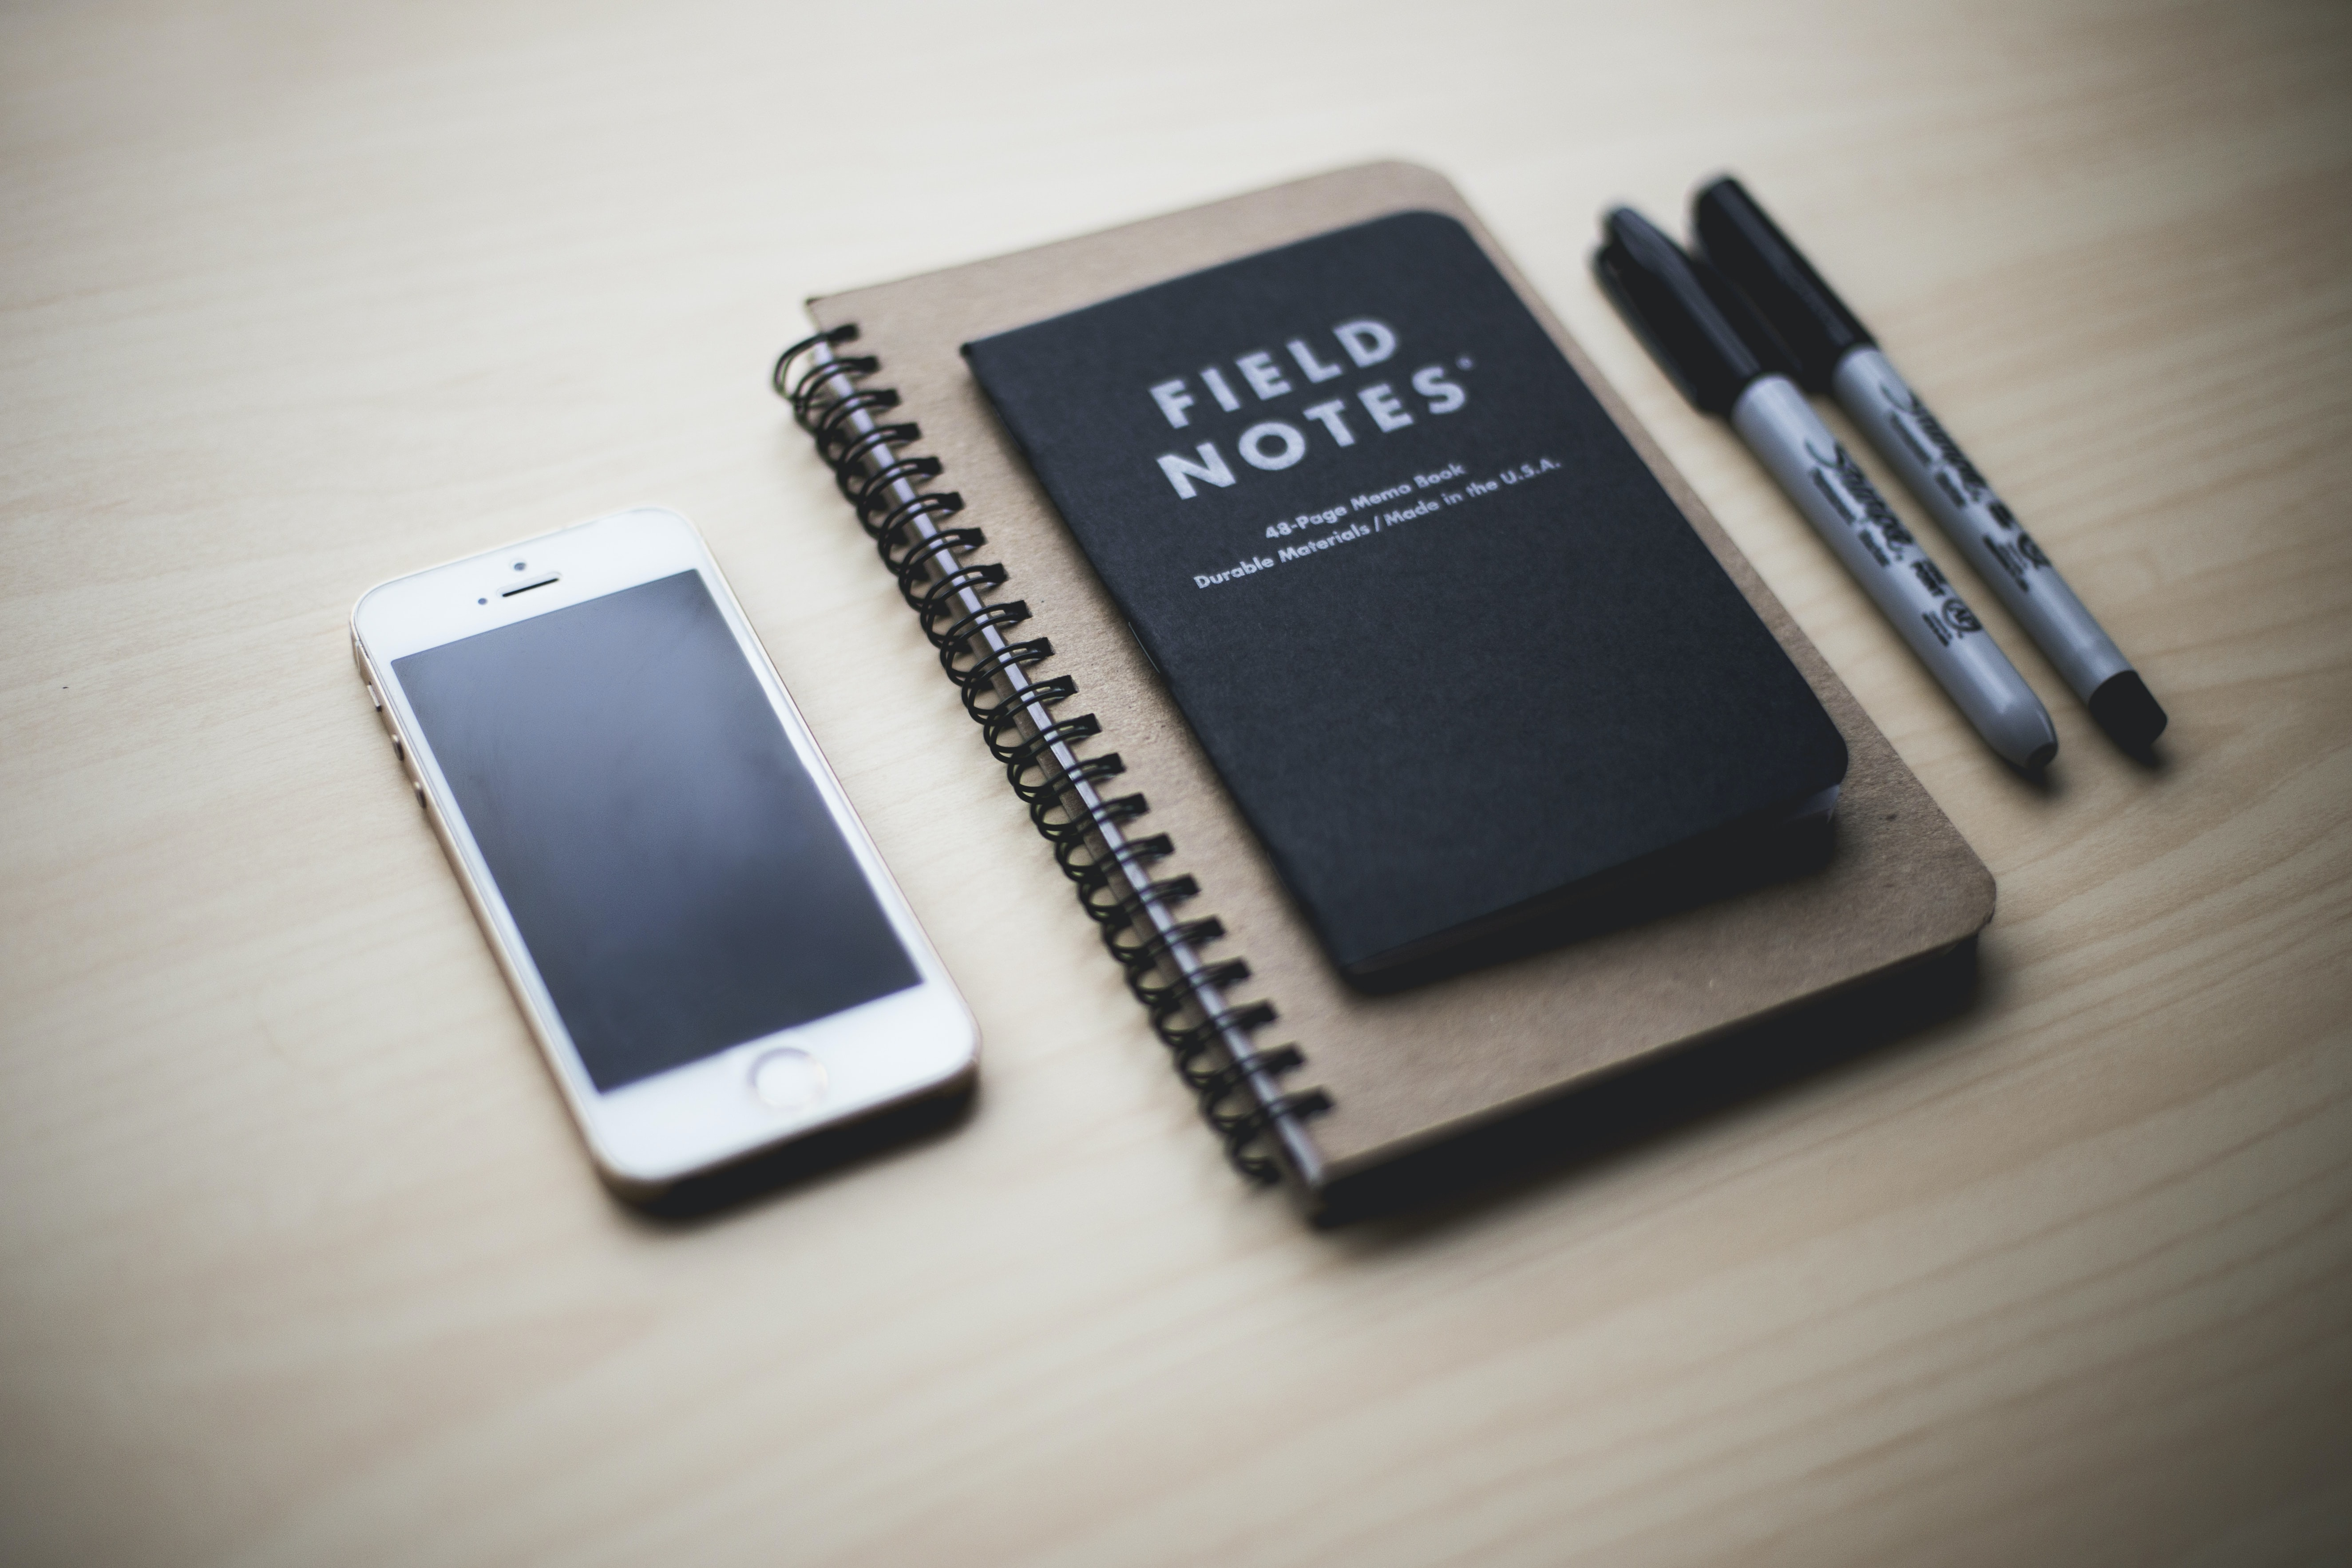 A Field Notes memo book on top of a larger spiral notebook with two sharpies on the right and a phone on the left